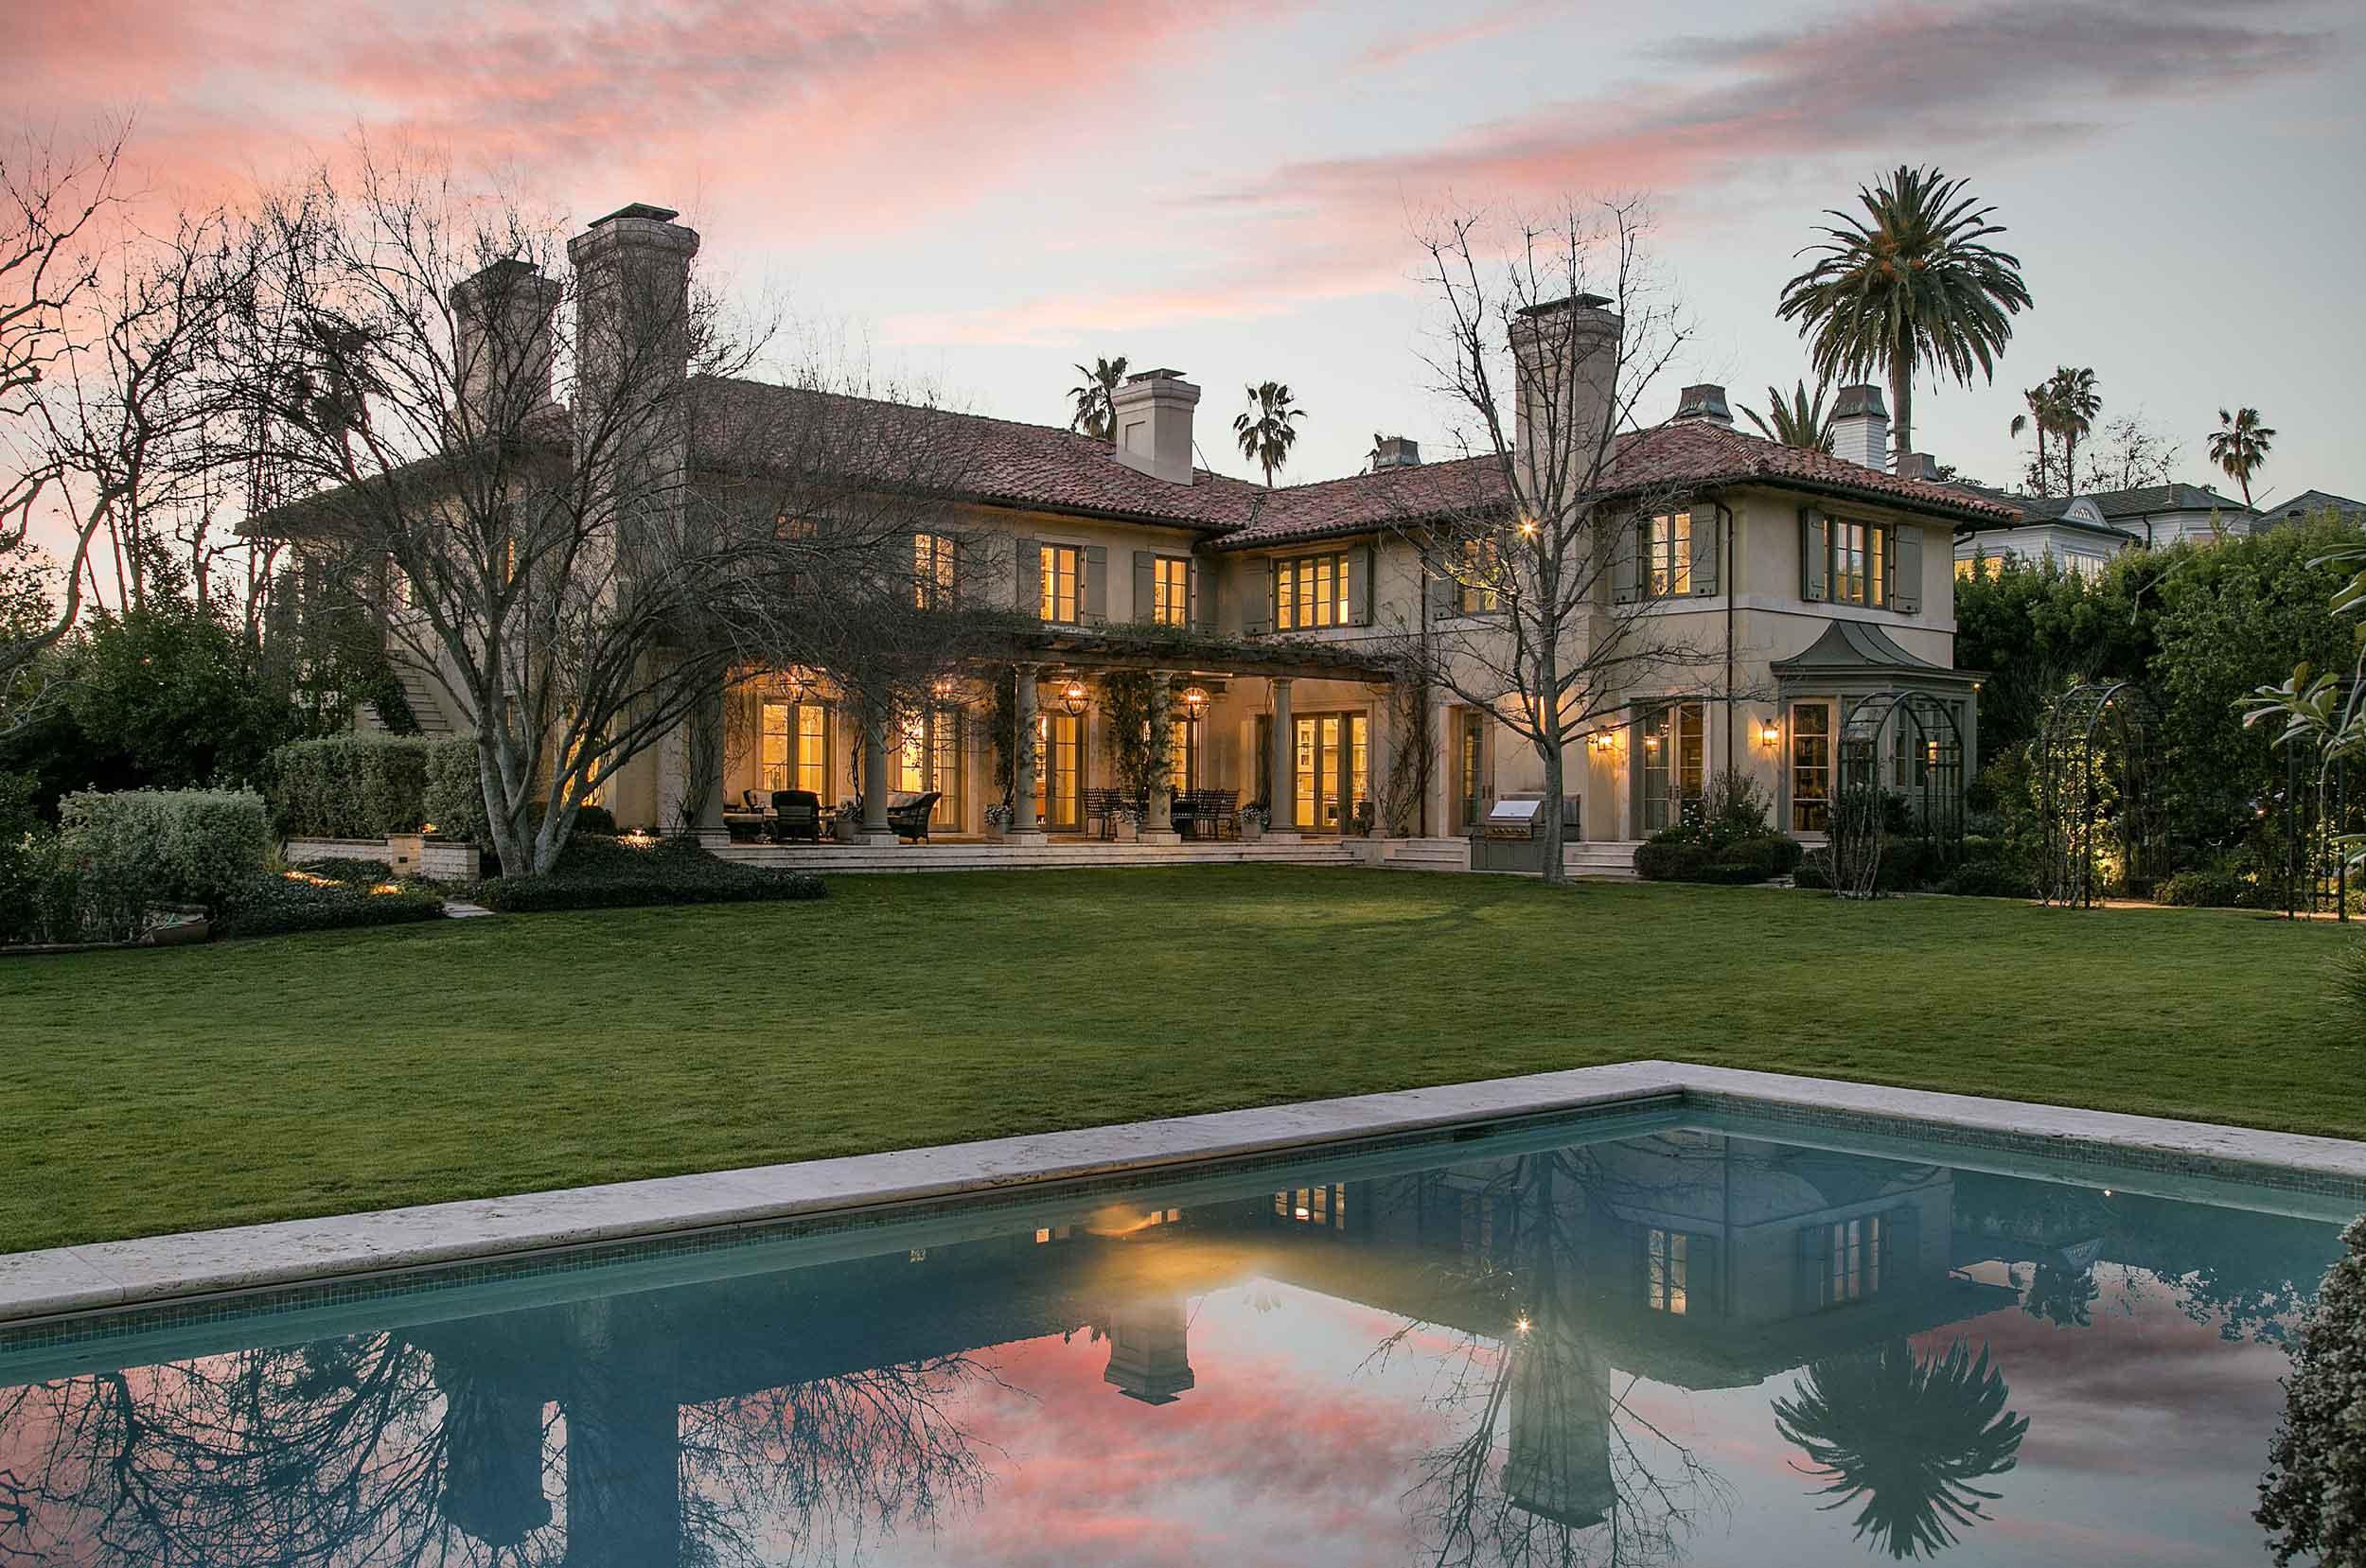 Villa Burlingame, Jim Belushi's magnificent Brentwood estate, invites glamorous living and grand entertaining with its authentic Provençal-inspired architecture and serene 1.3-acre grounds.